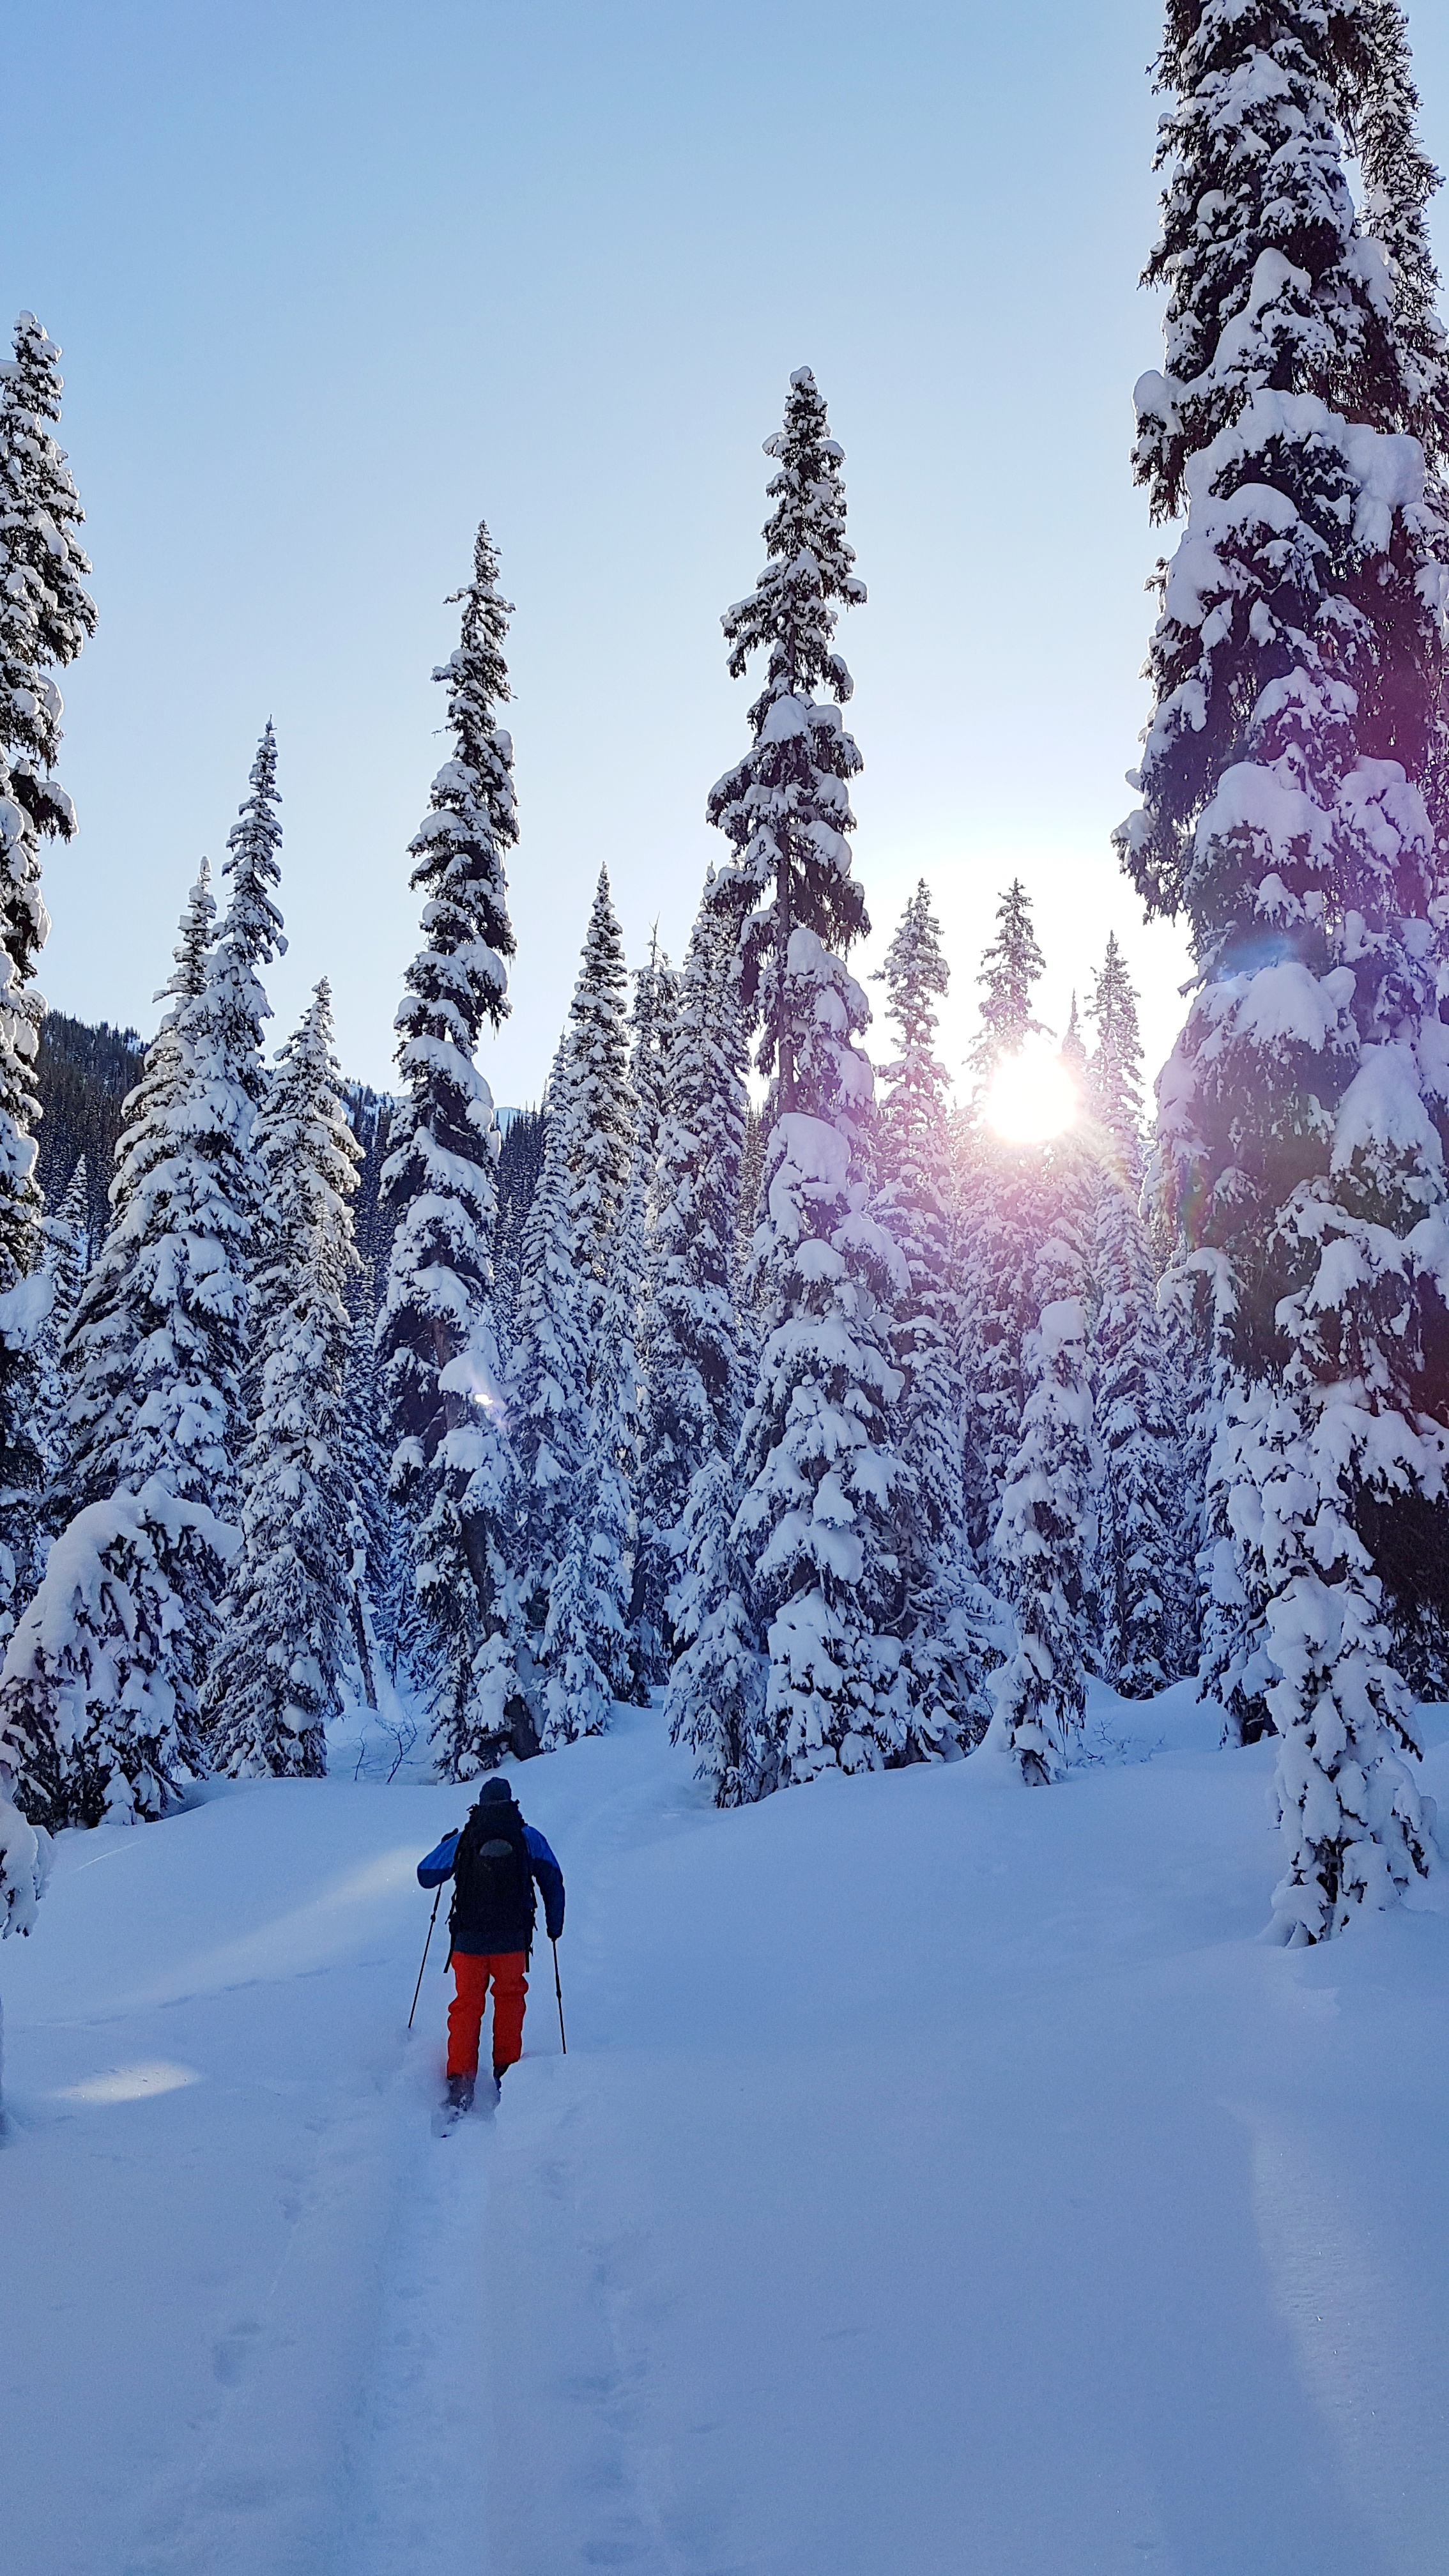 Mid-morning light in the backcountry.